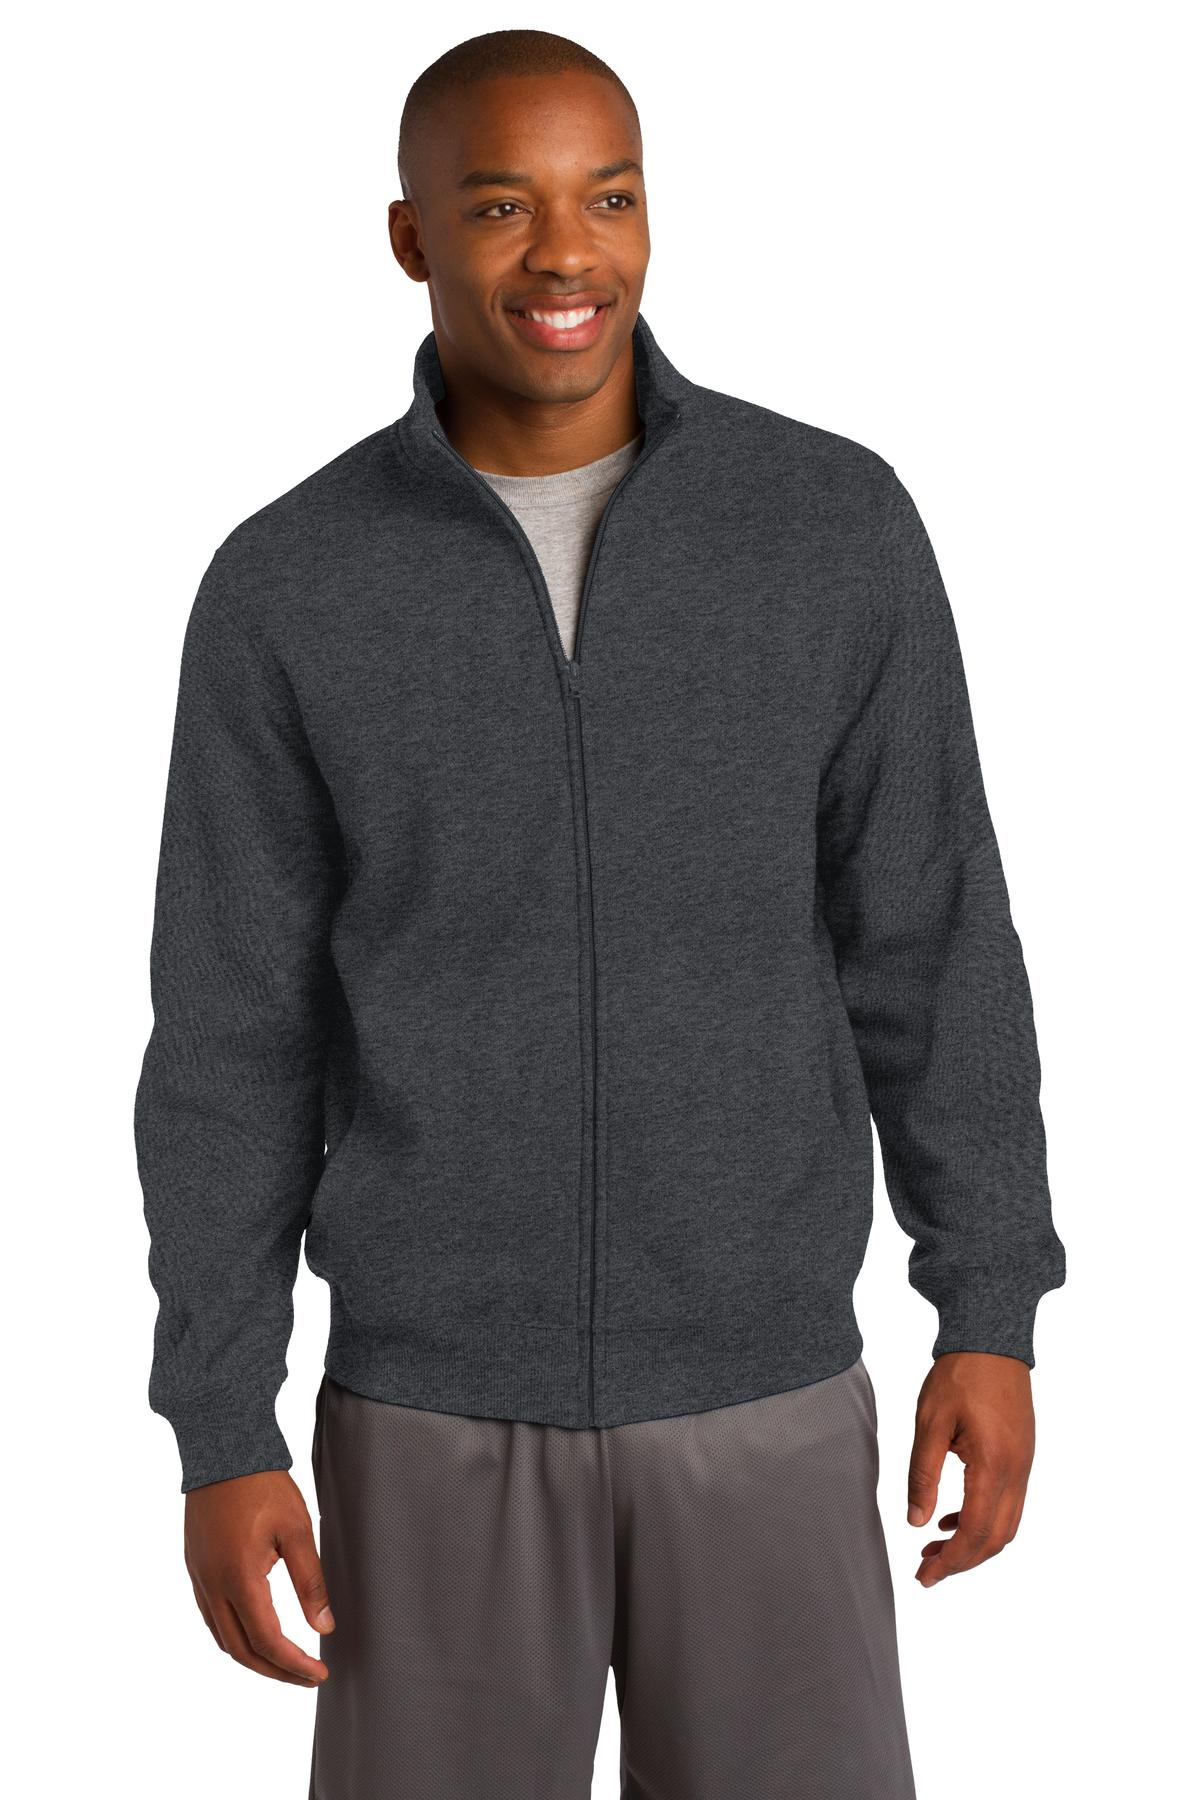 Sweatshirts-Fleece-Full-Zip-2